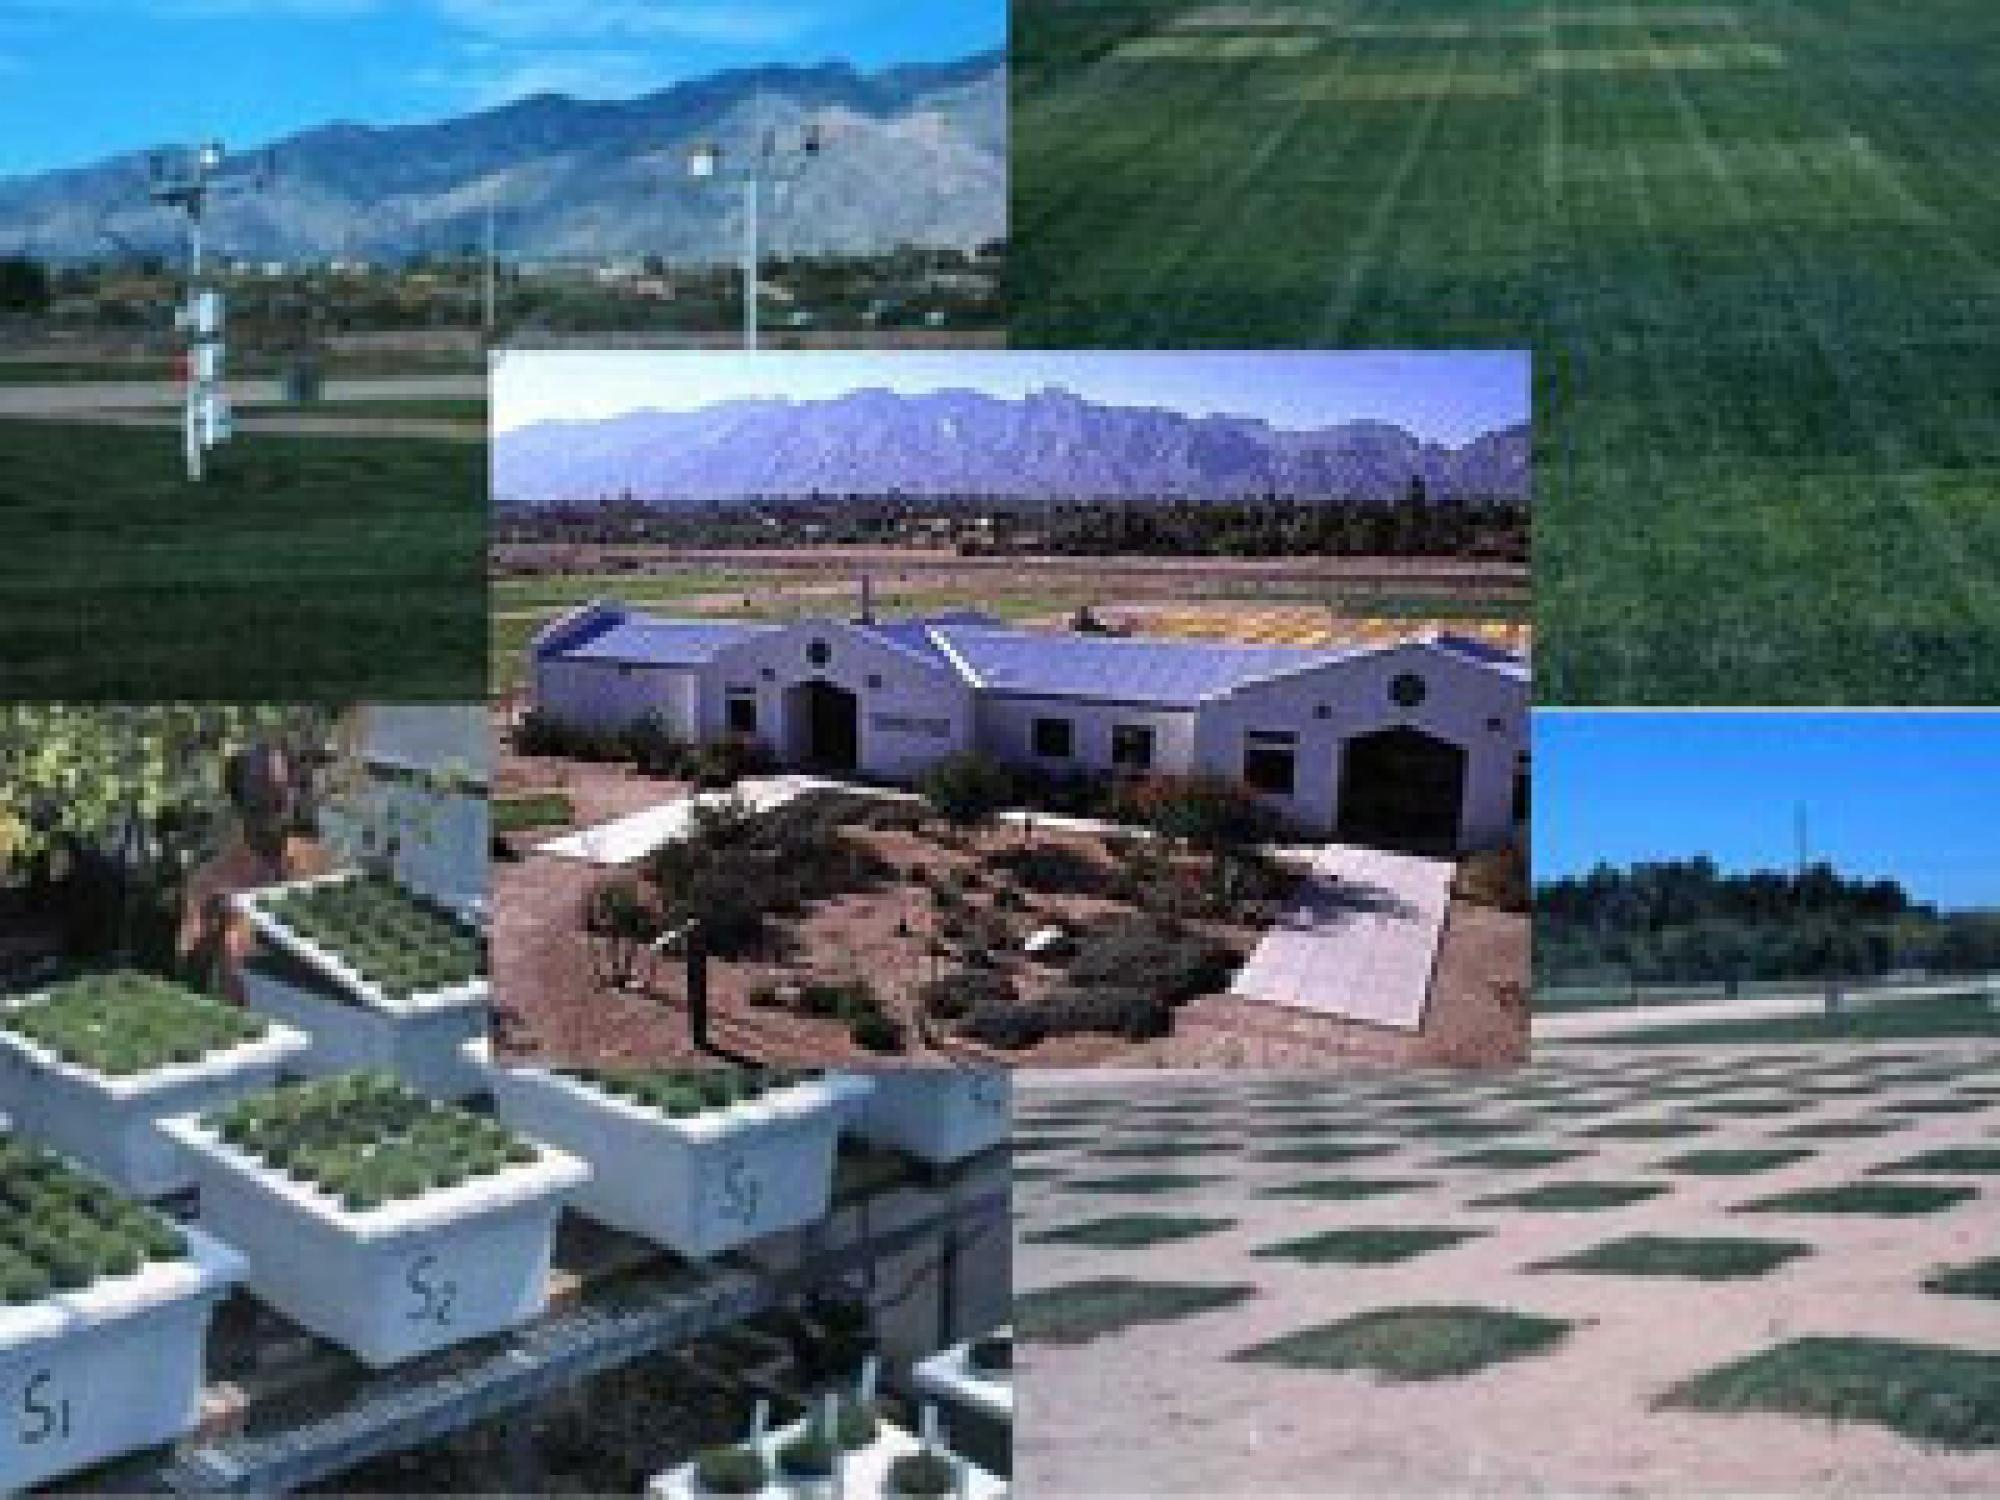 Irrigation deficit study: Seven types of salt-tolerant, low-desert-adapted grasses are grown with descending amounts of water at the Karsten Turfgrass Research Facility to determine the effect of water stress on turf quality.